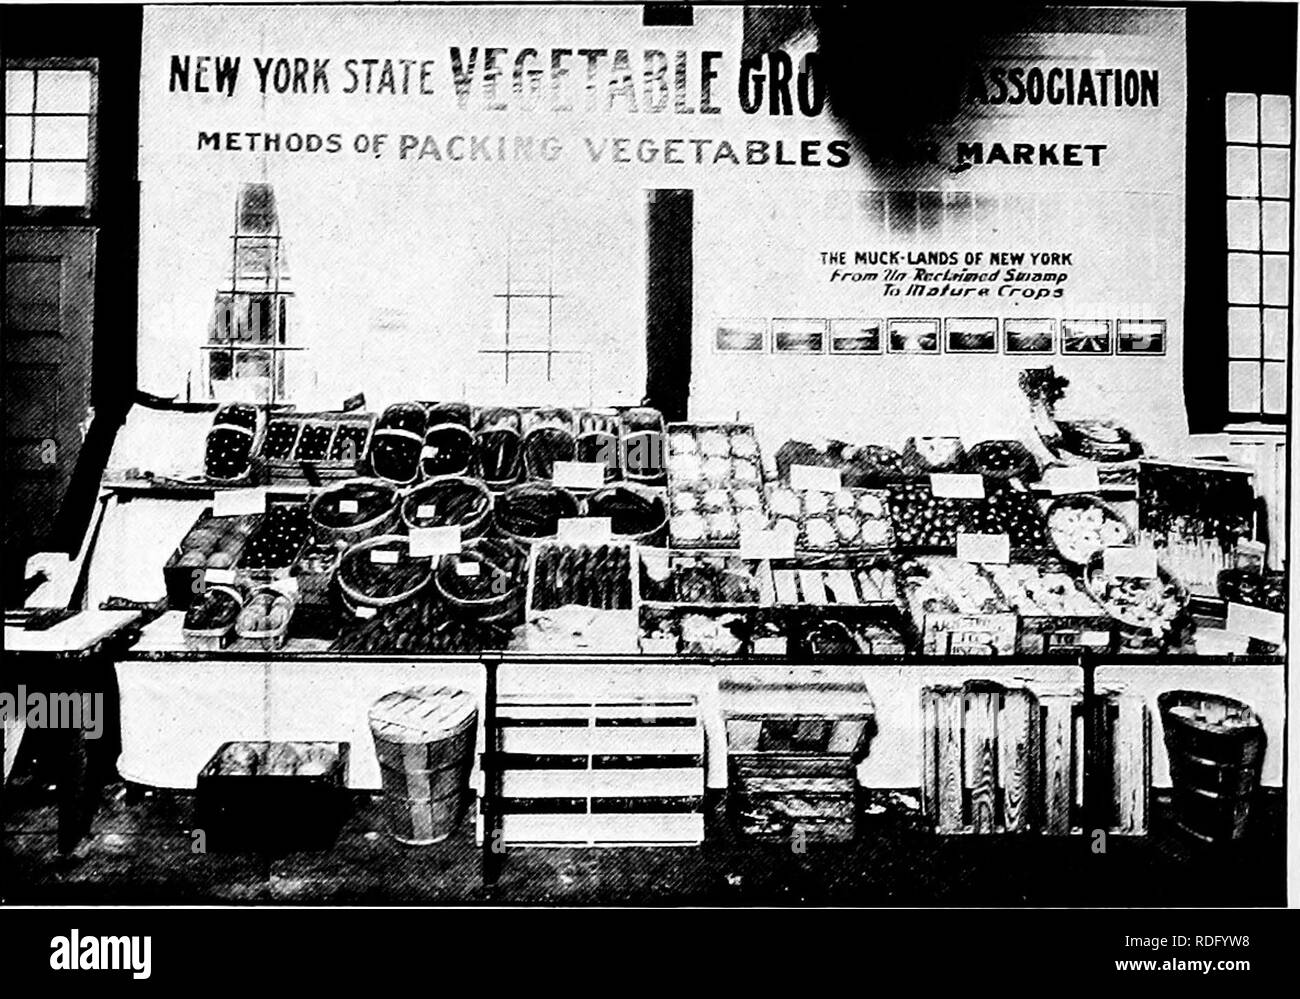 . The vegetable industry in New York state ... Vegetables; Gardening. 13Y0 The Vegetable Industry in New Yoek State Buffalo, Angola and Syracuse. It is probable that many others will be held next year. This was the contribution of 1914. The prime work for 1915, which is now under way, is the es- tablishment of a crop report service for the benefit of members. Sheets are sent out to all members and these are filled out and sent in to headquarters. This work is under the able and ener- getic leadership of Professor W. B. Nissley of the Long Island School of Agriculture at Farmingdale.. Fig. 415. - Stock Image